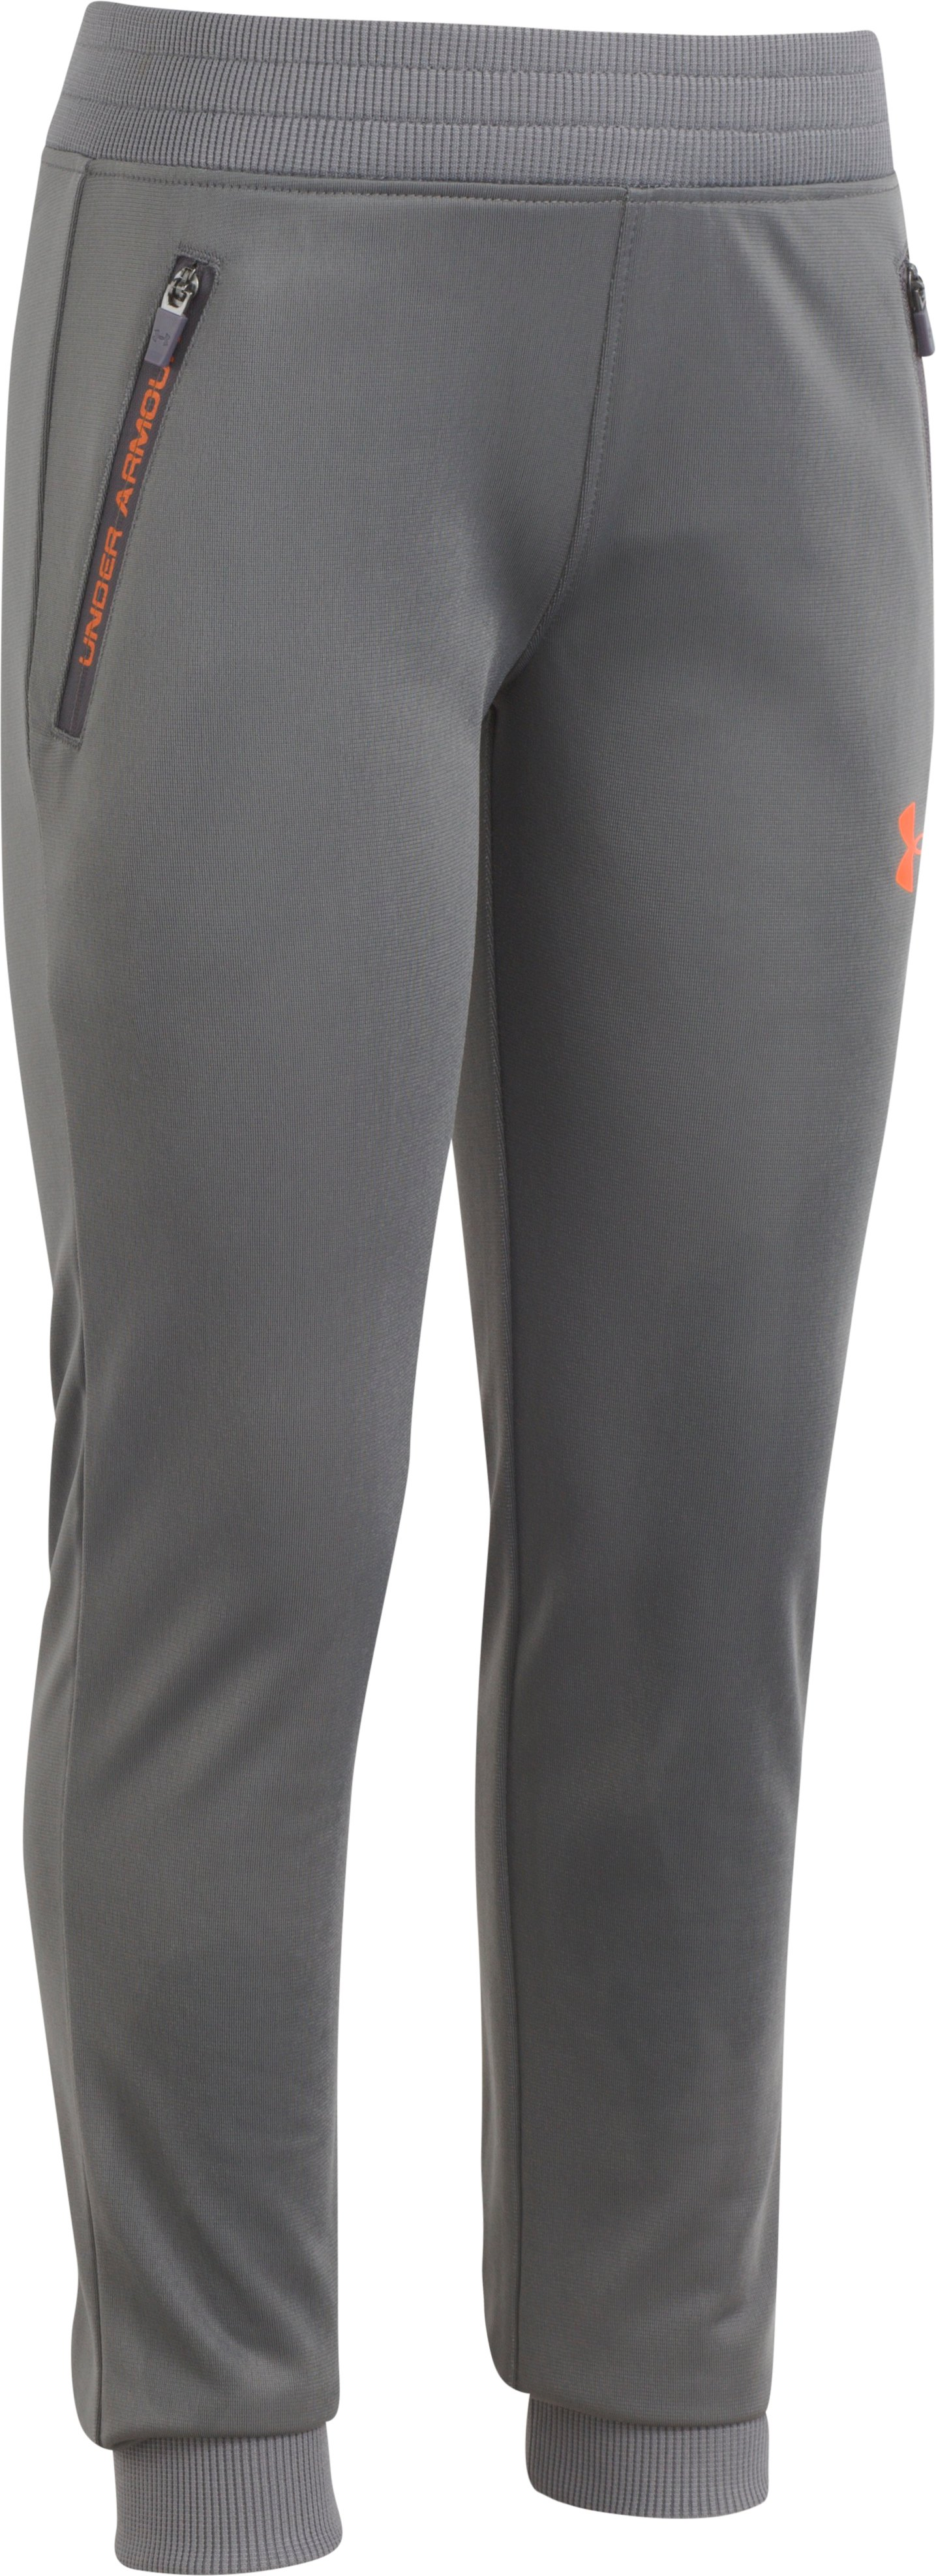 Boys' Pre-School UA Pennant 2.0 Tapered Pants, Graphite, zoomed